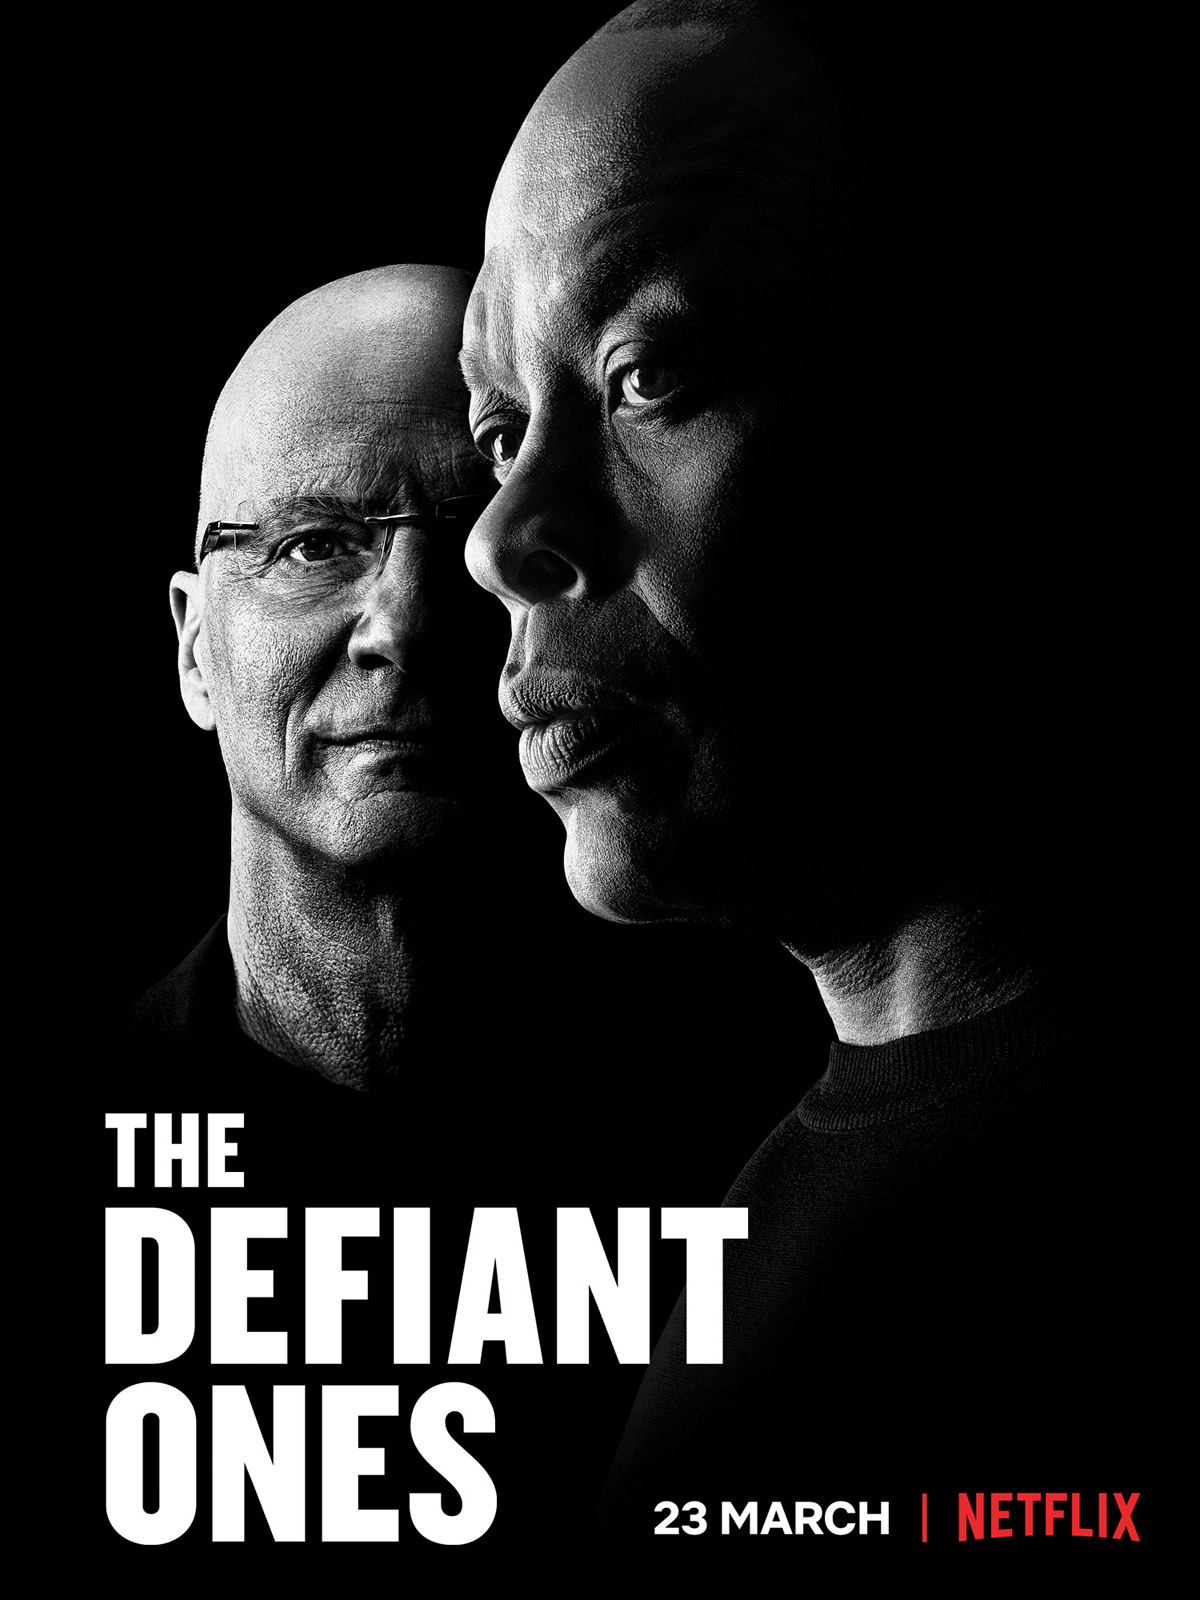 Affiche de la série The Defiant Ones